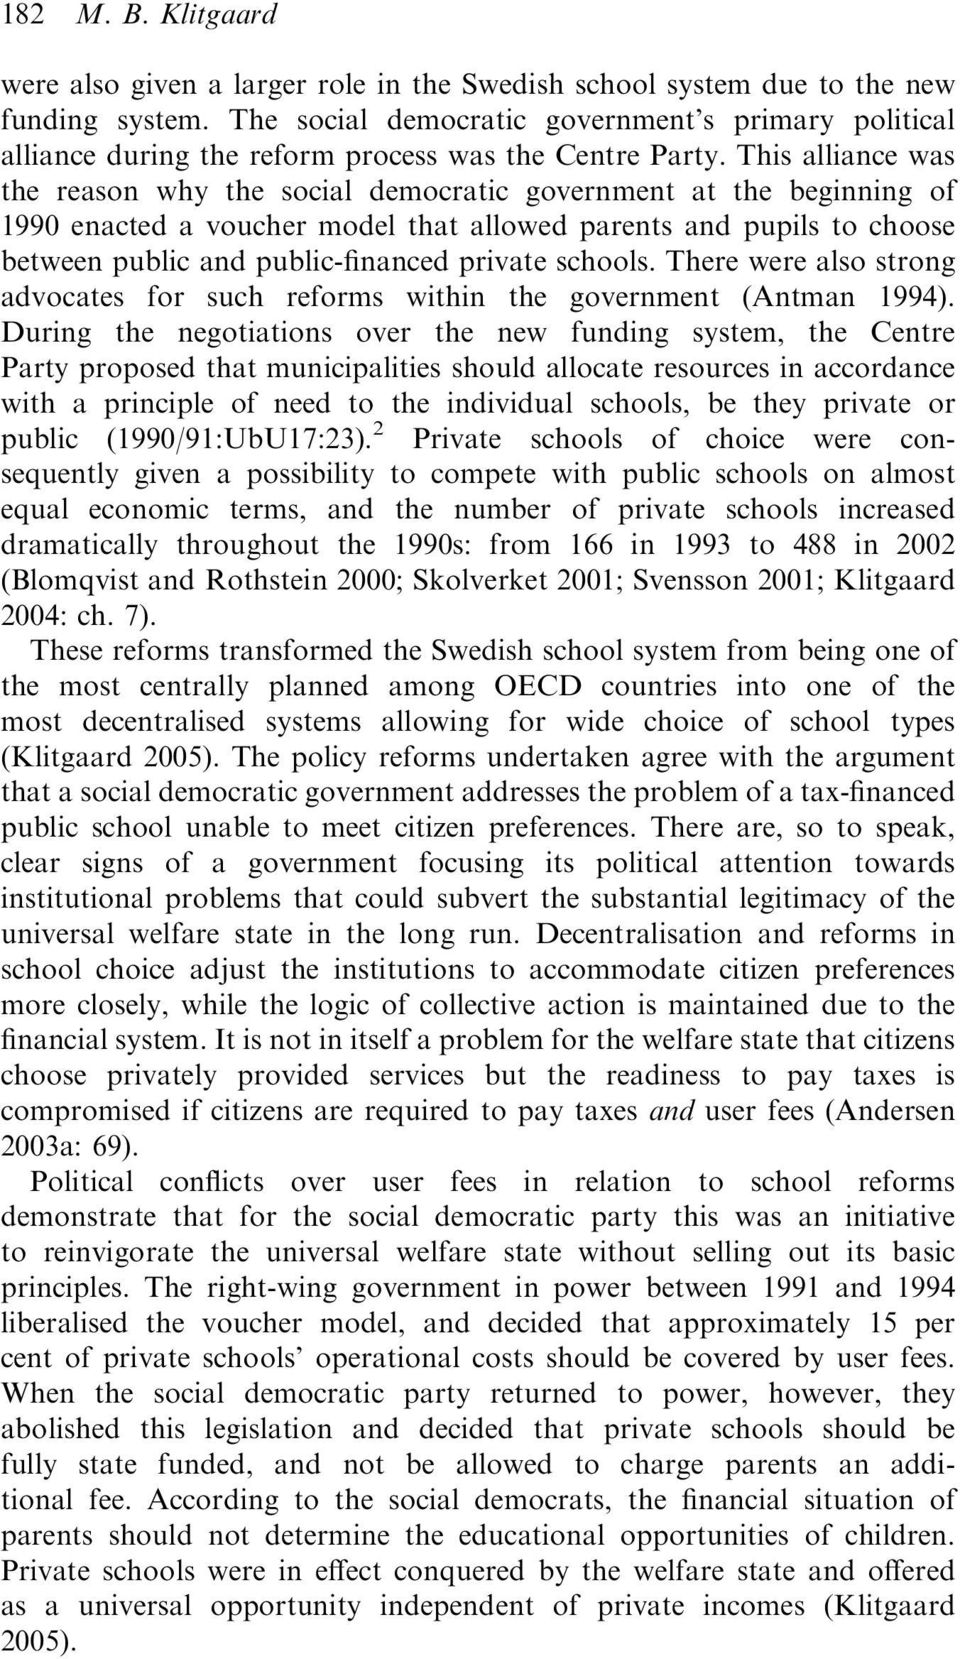 This alliance was the reason why the social democratic government at the beginning of 1990 enacted a voucher model that allowed parents and pupils to choose between public and public-financed private